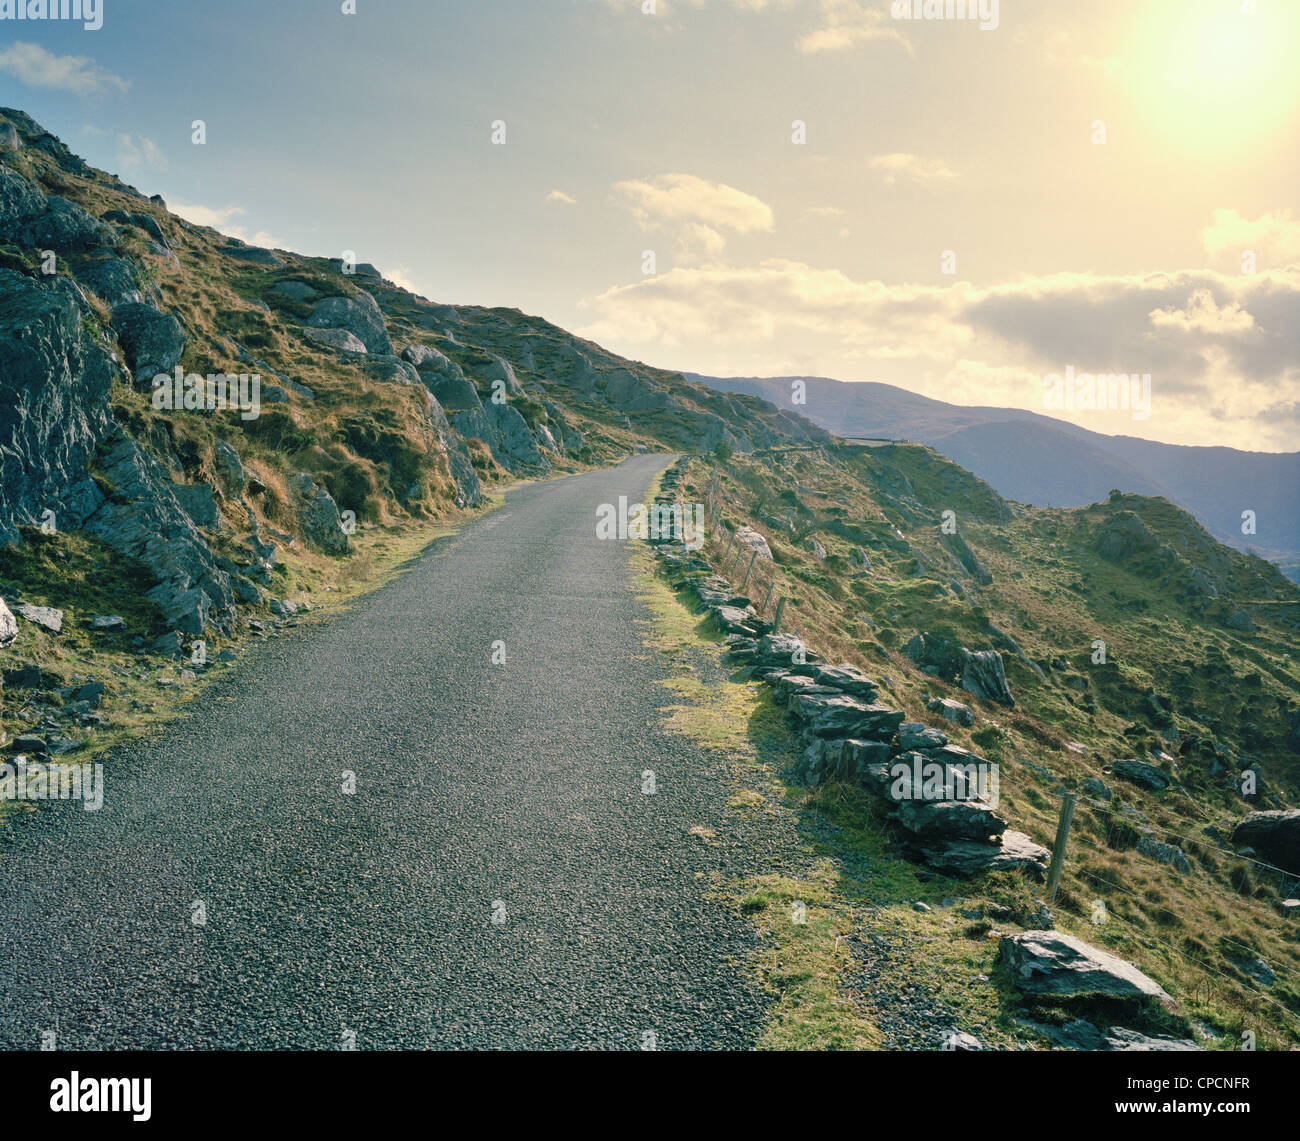 Paved rural road on mountainside - Stock Image